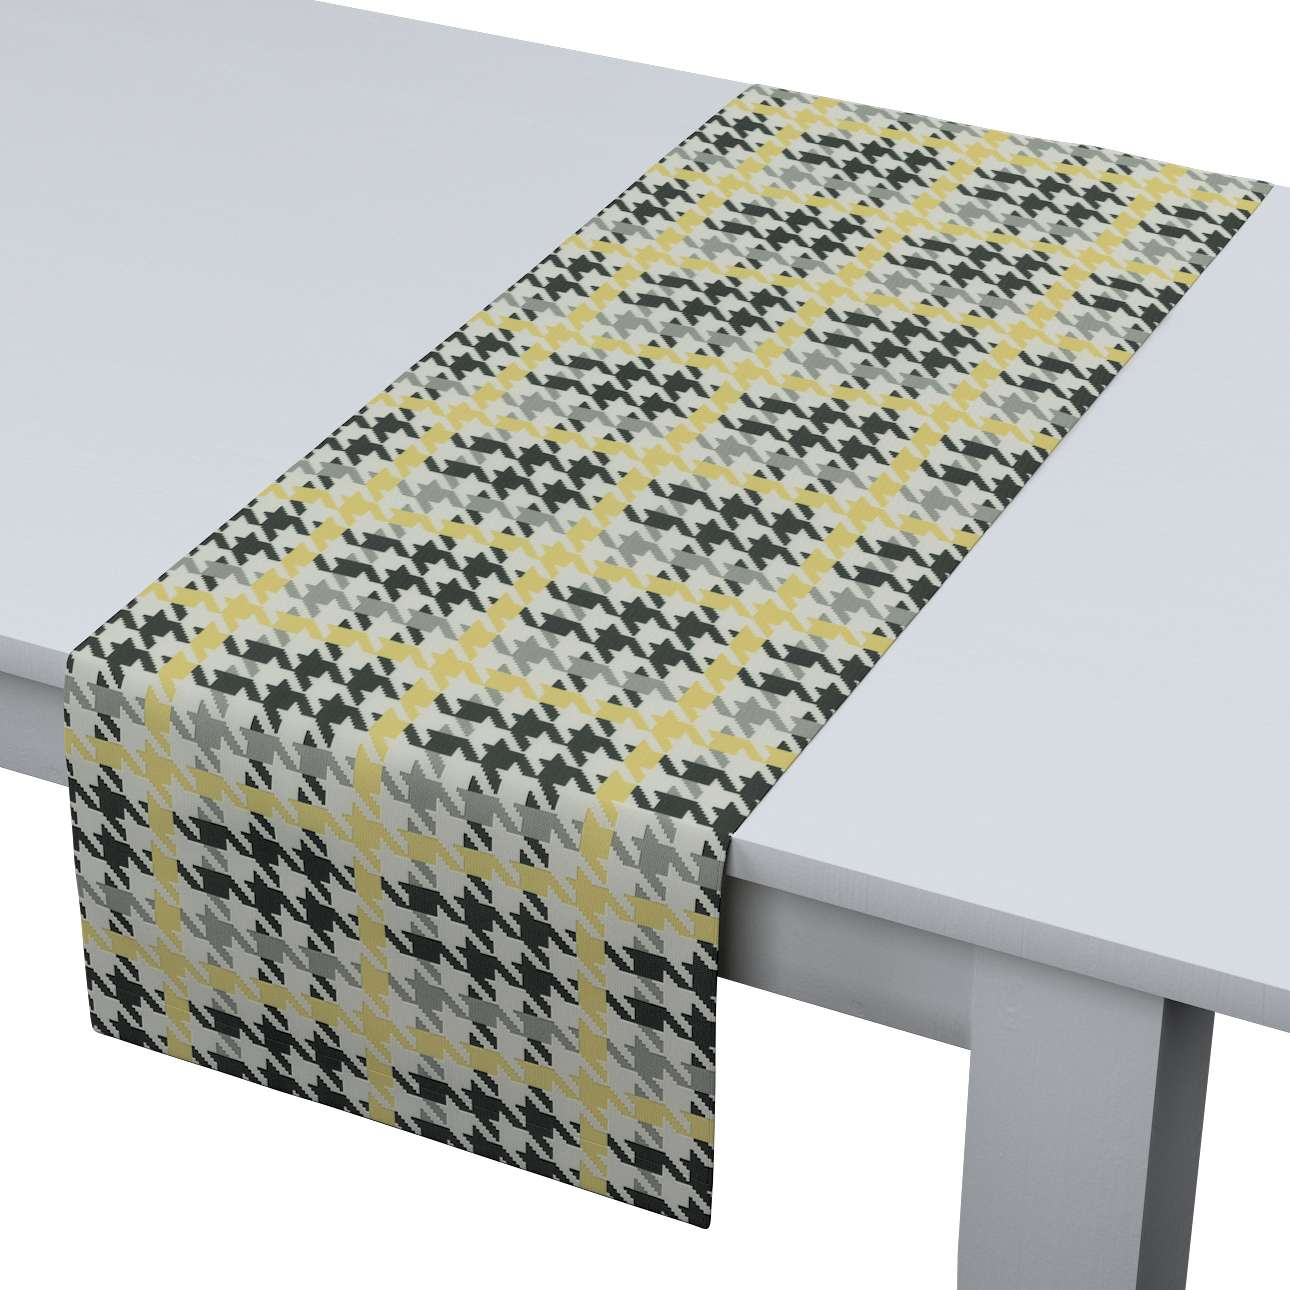 Table runner 40 x 130 cm (16 x 51 inch) in collection Brooklyn, fabric: 137-79